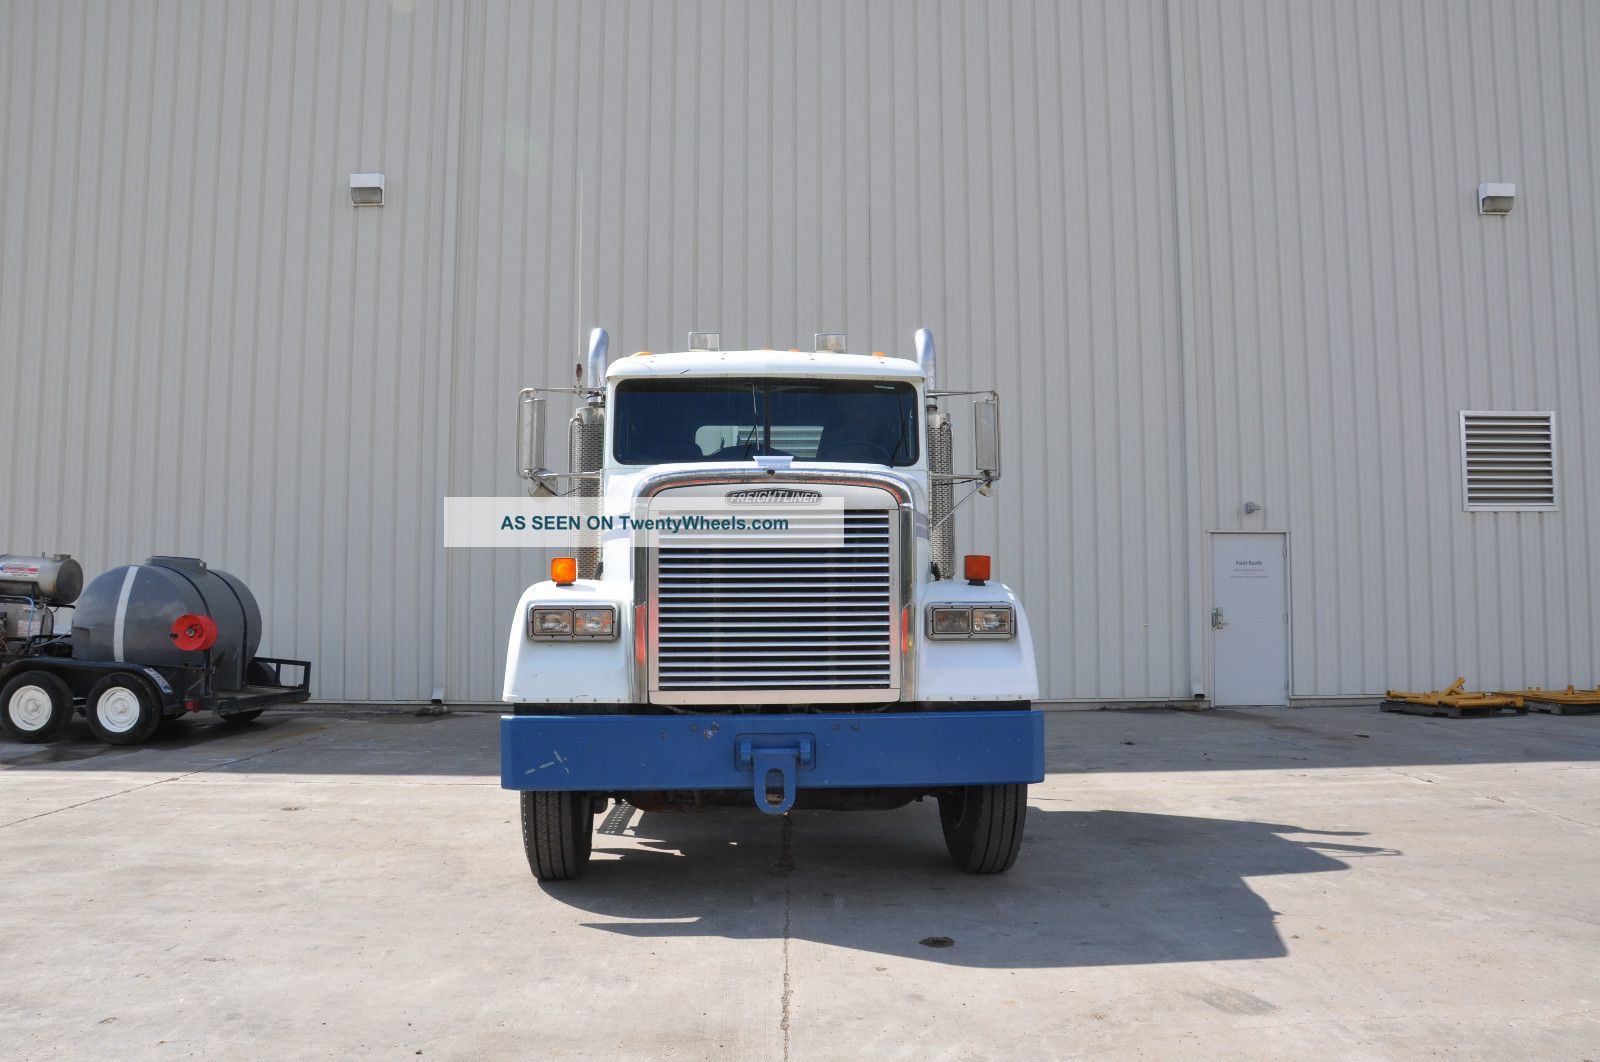 1995 Freightliner Fld120 Severe Duty Daycab Semi Trucks photo 2